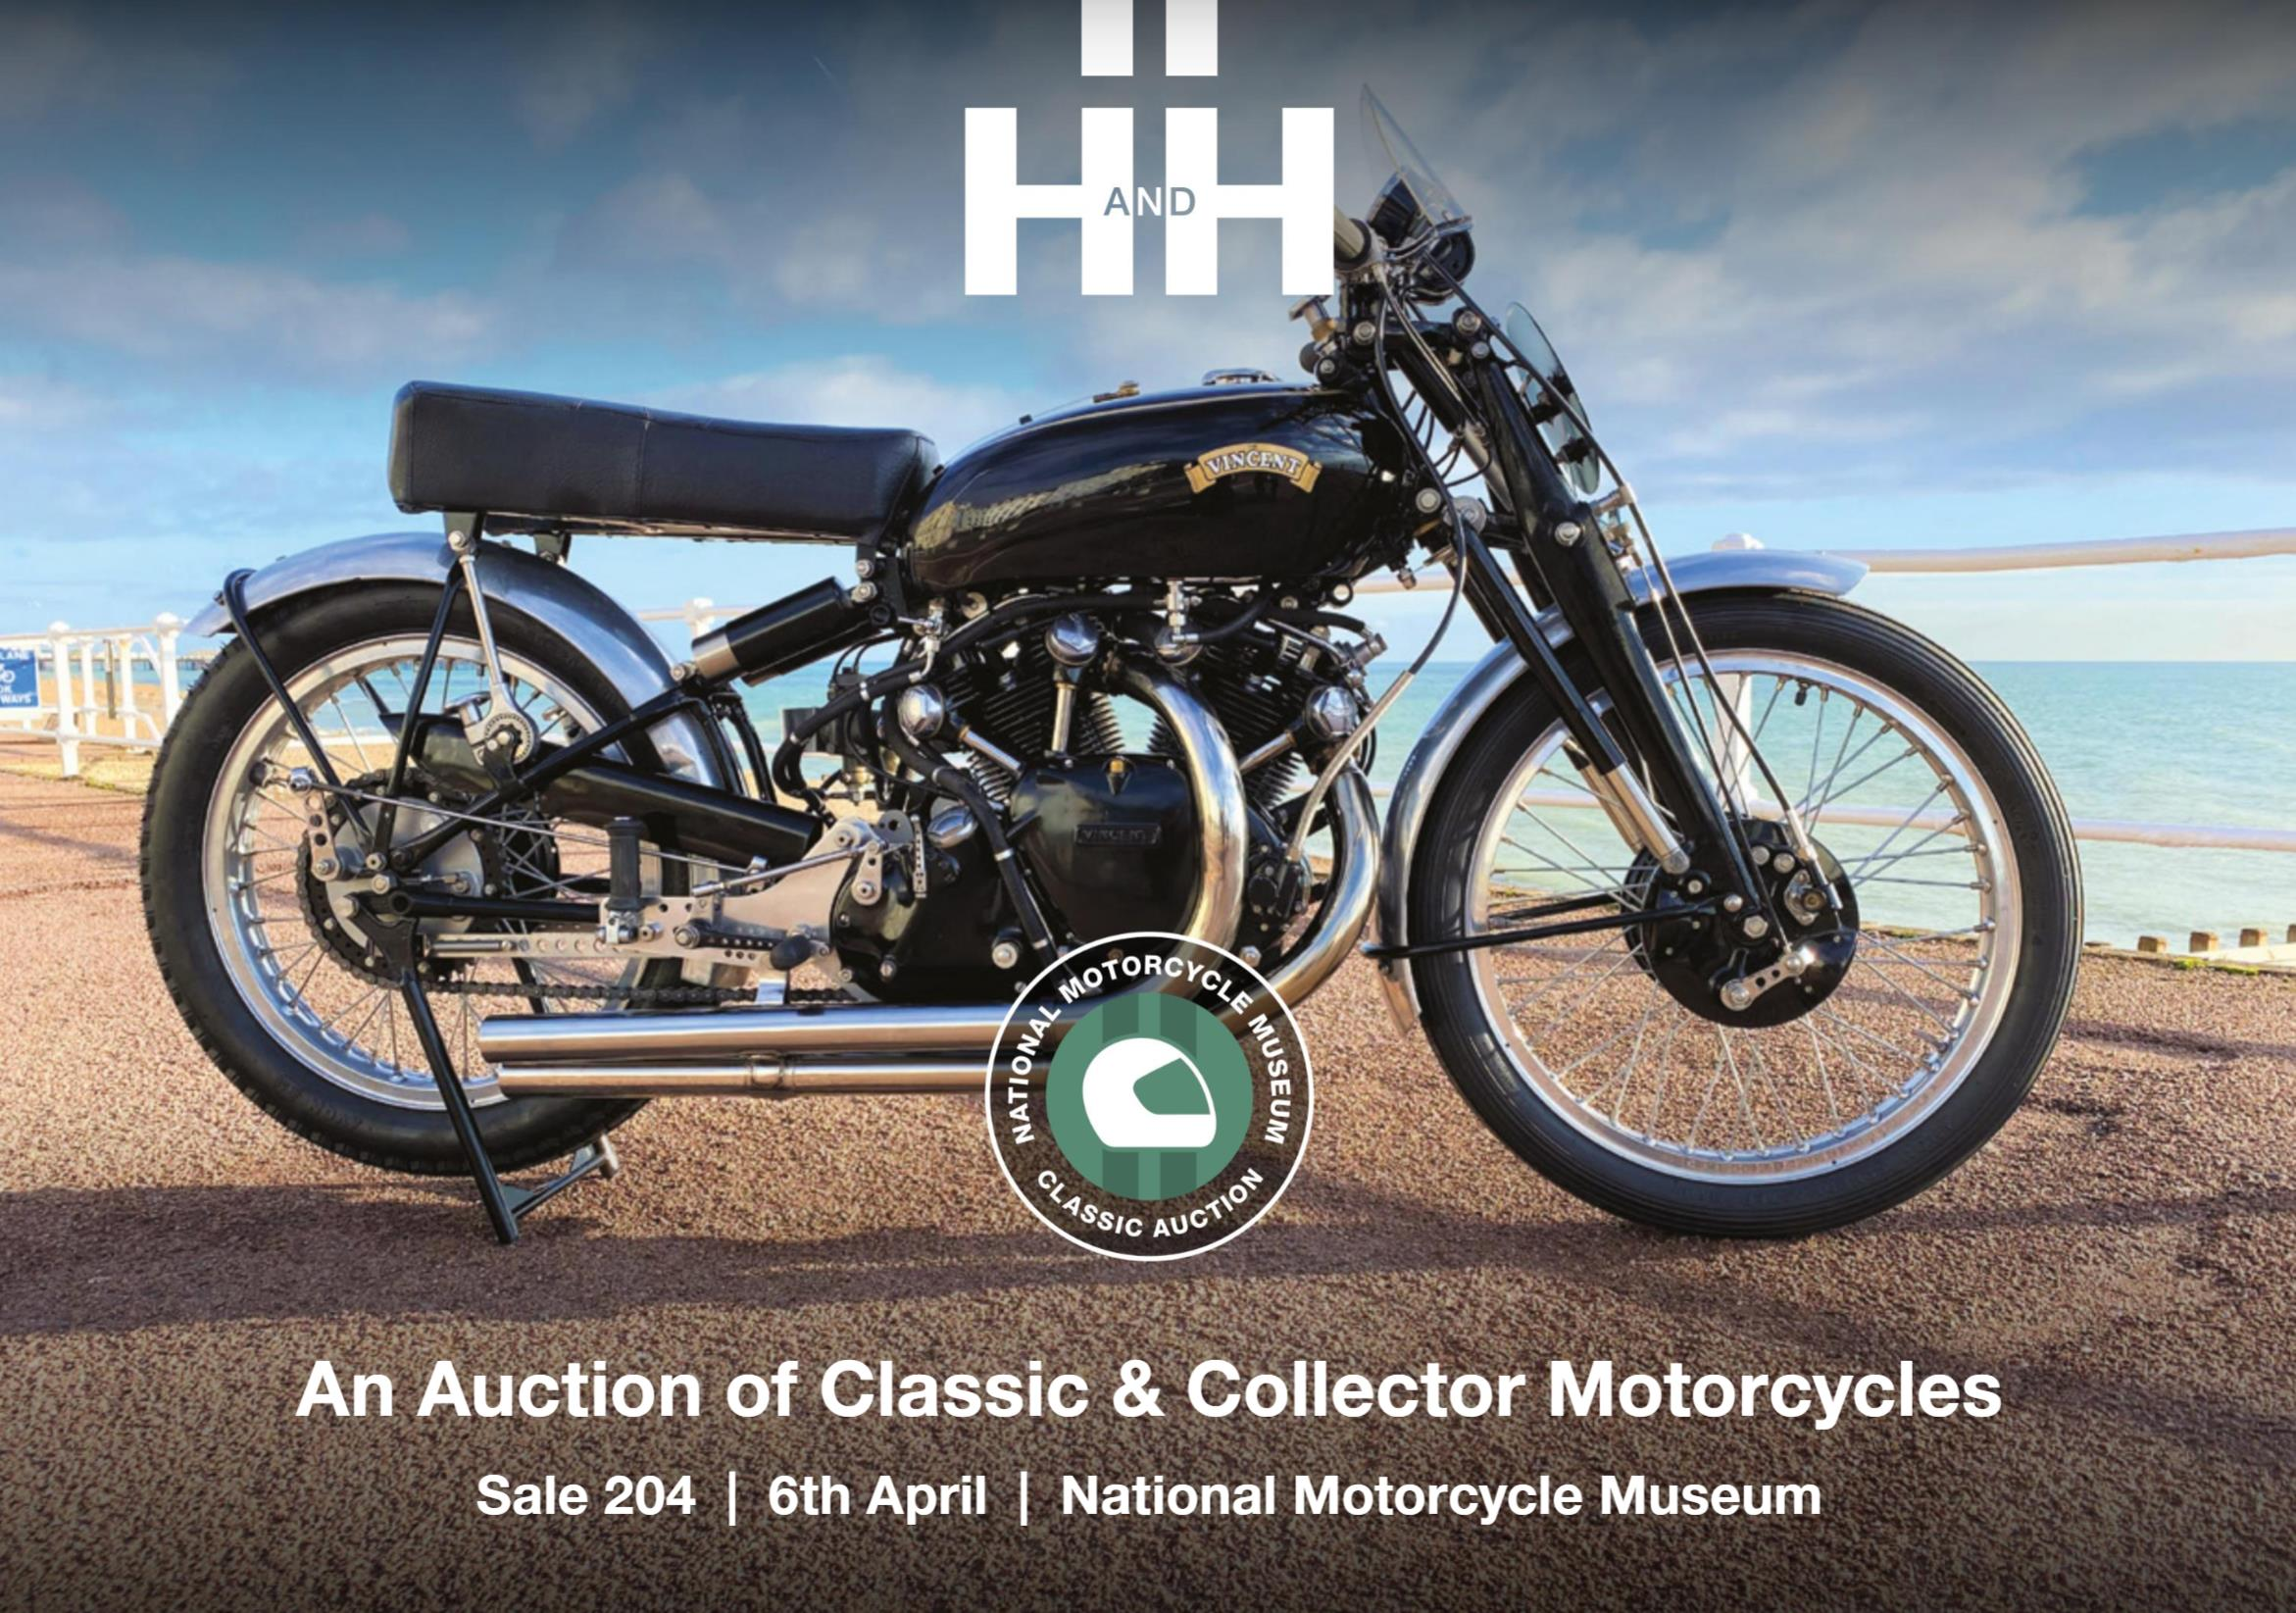 Imperial War Museum Classic Car Auction 26th May